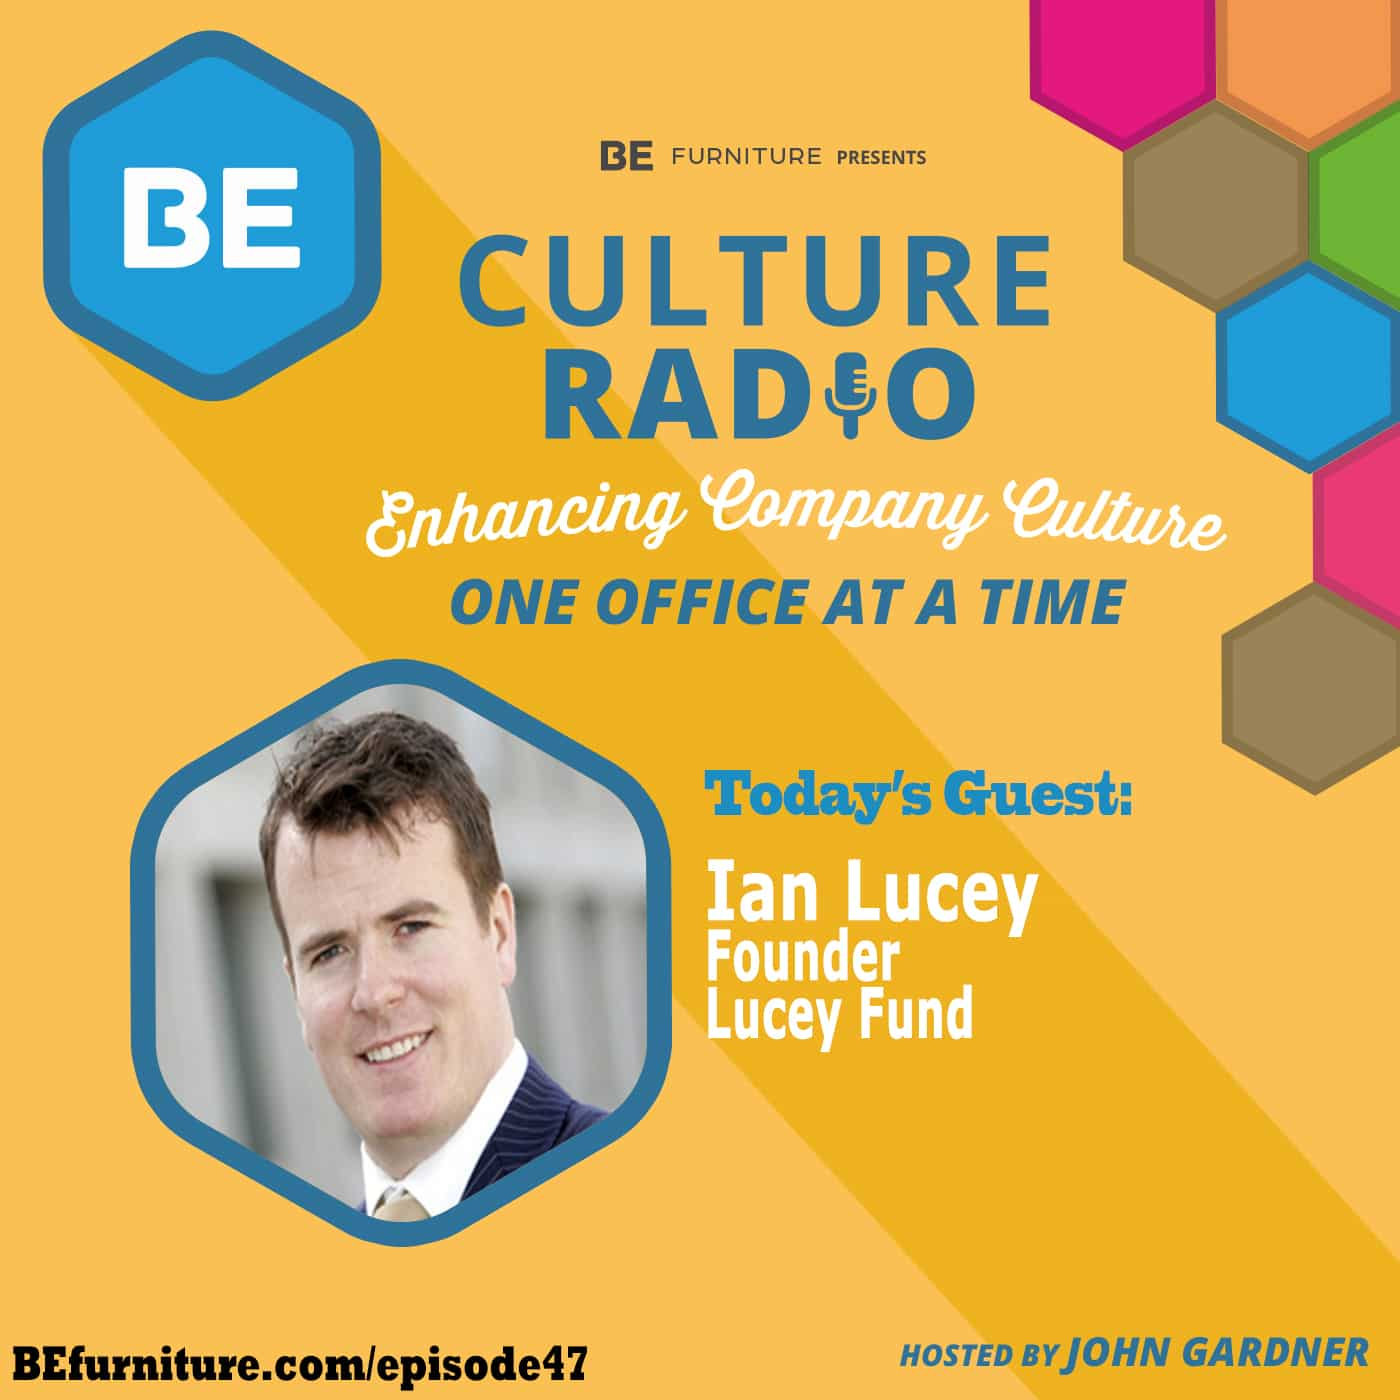 Ian Lucey - Founder, Lucey Fund